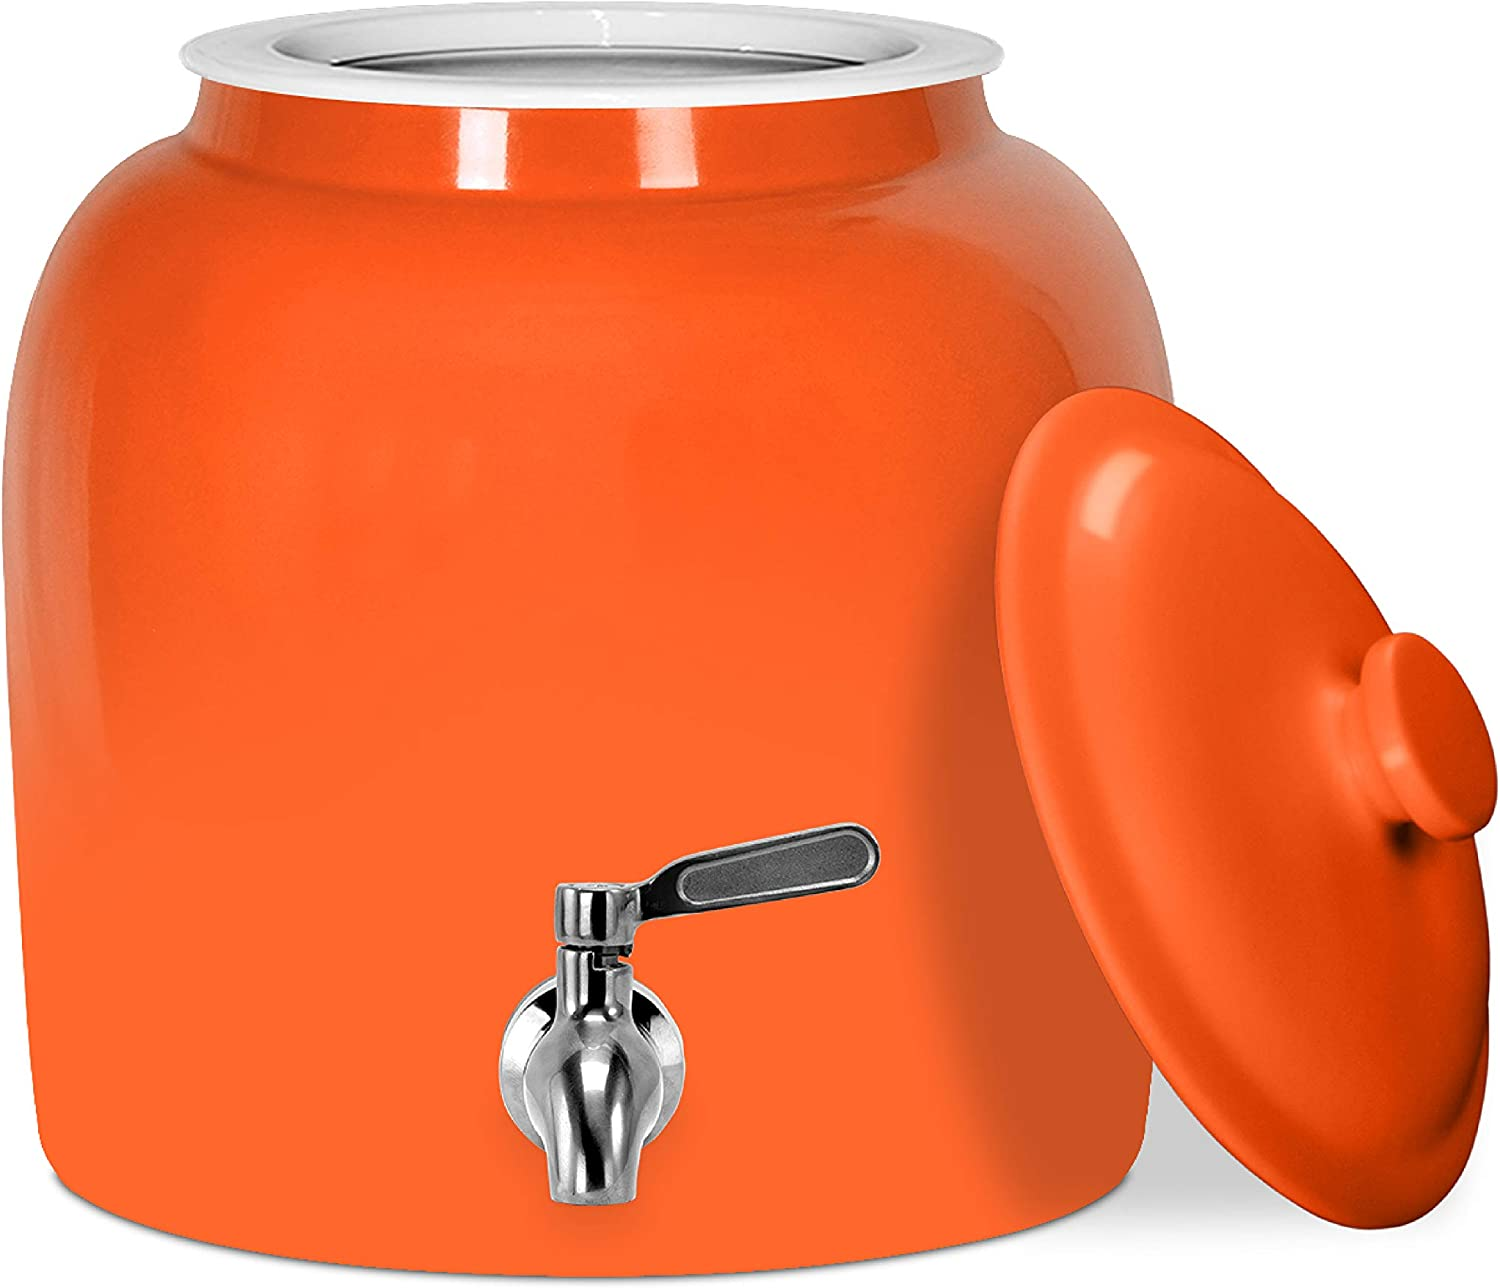 Geo Sports Porcelain Water Dispenser (Solid Color Series); Lid and Valve Included, E-Comm Shipping Ready (Solid Orange)